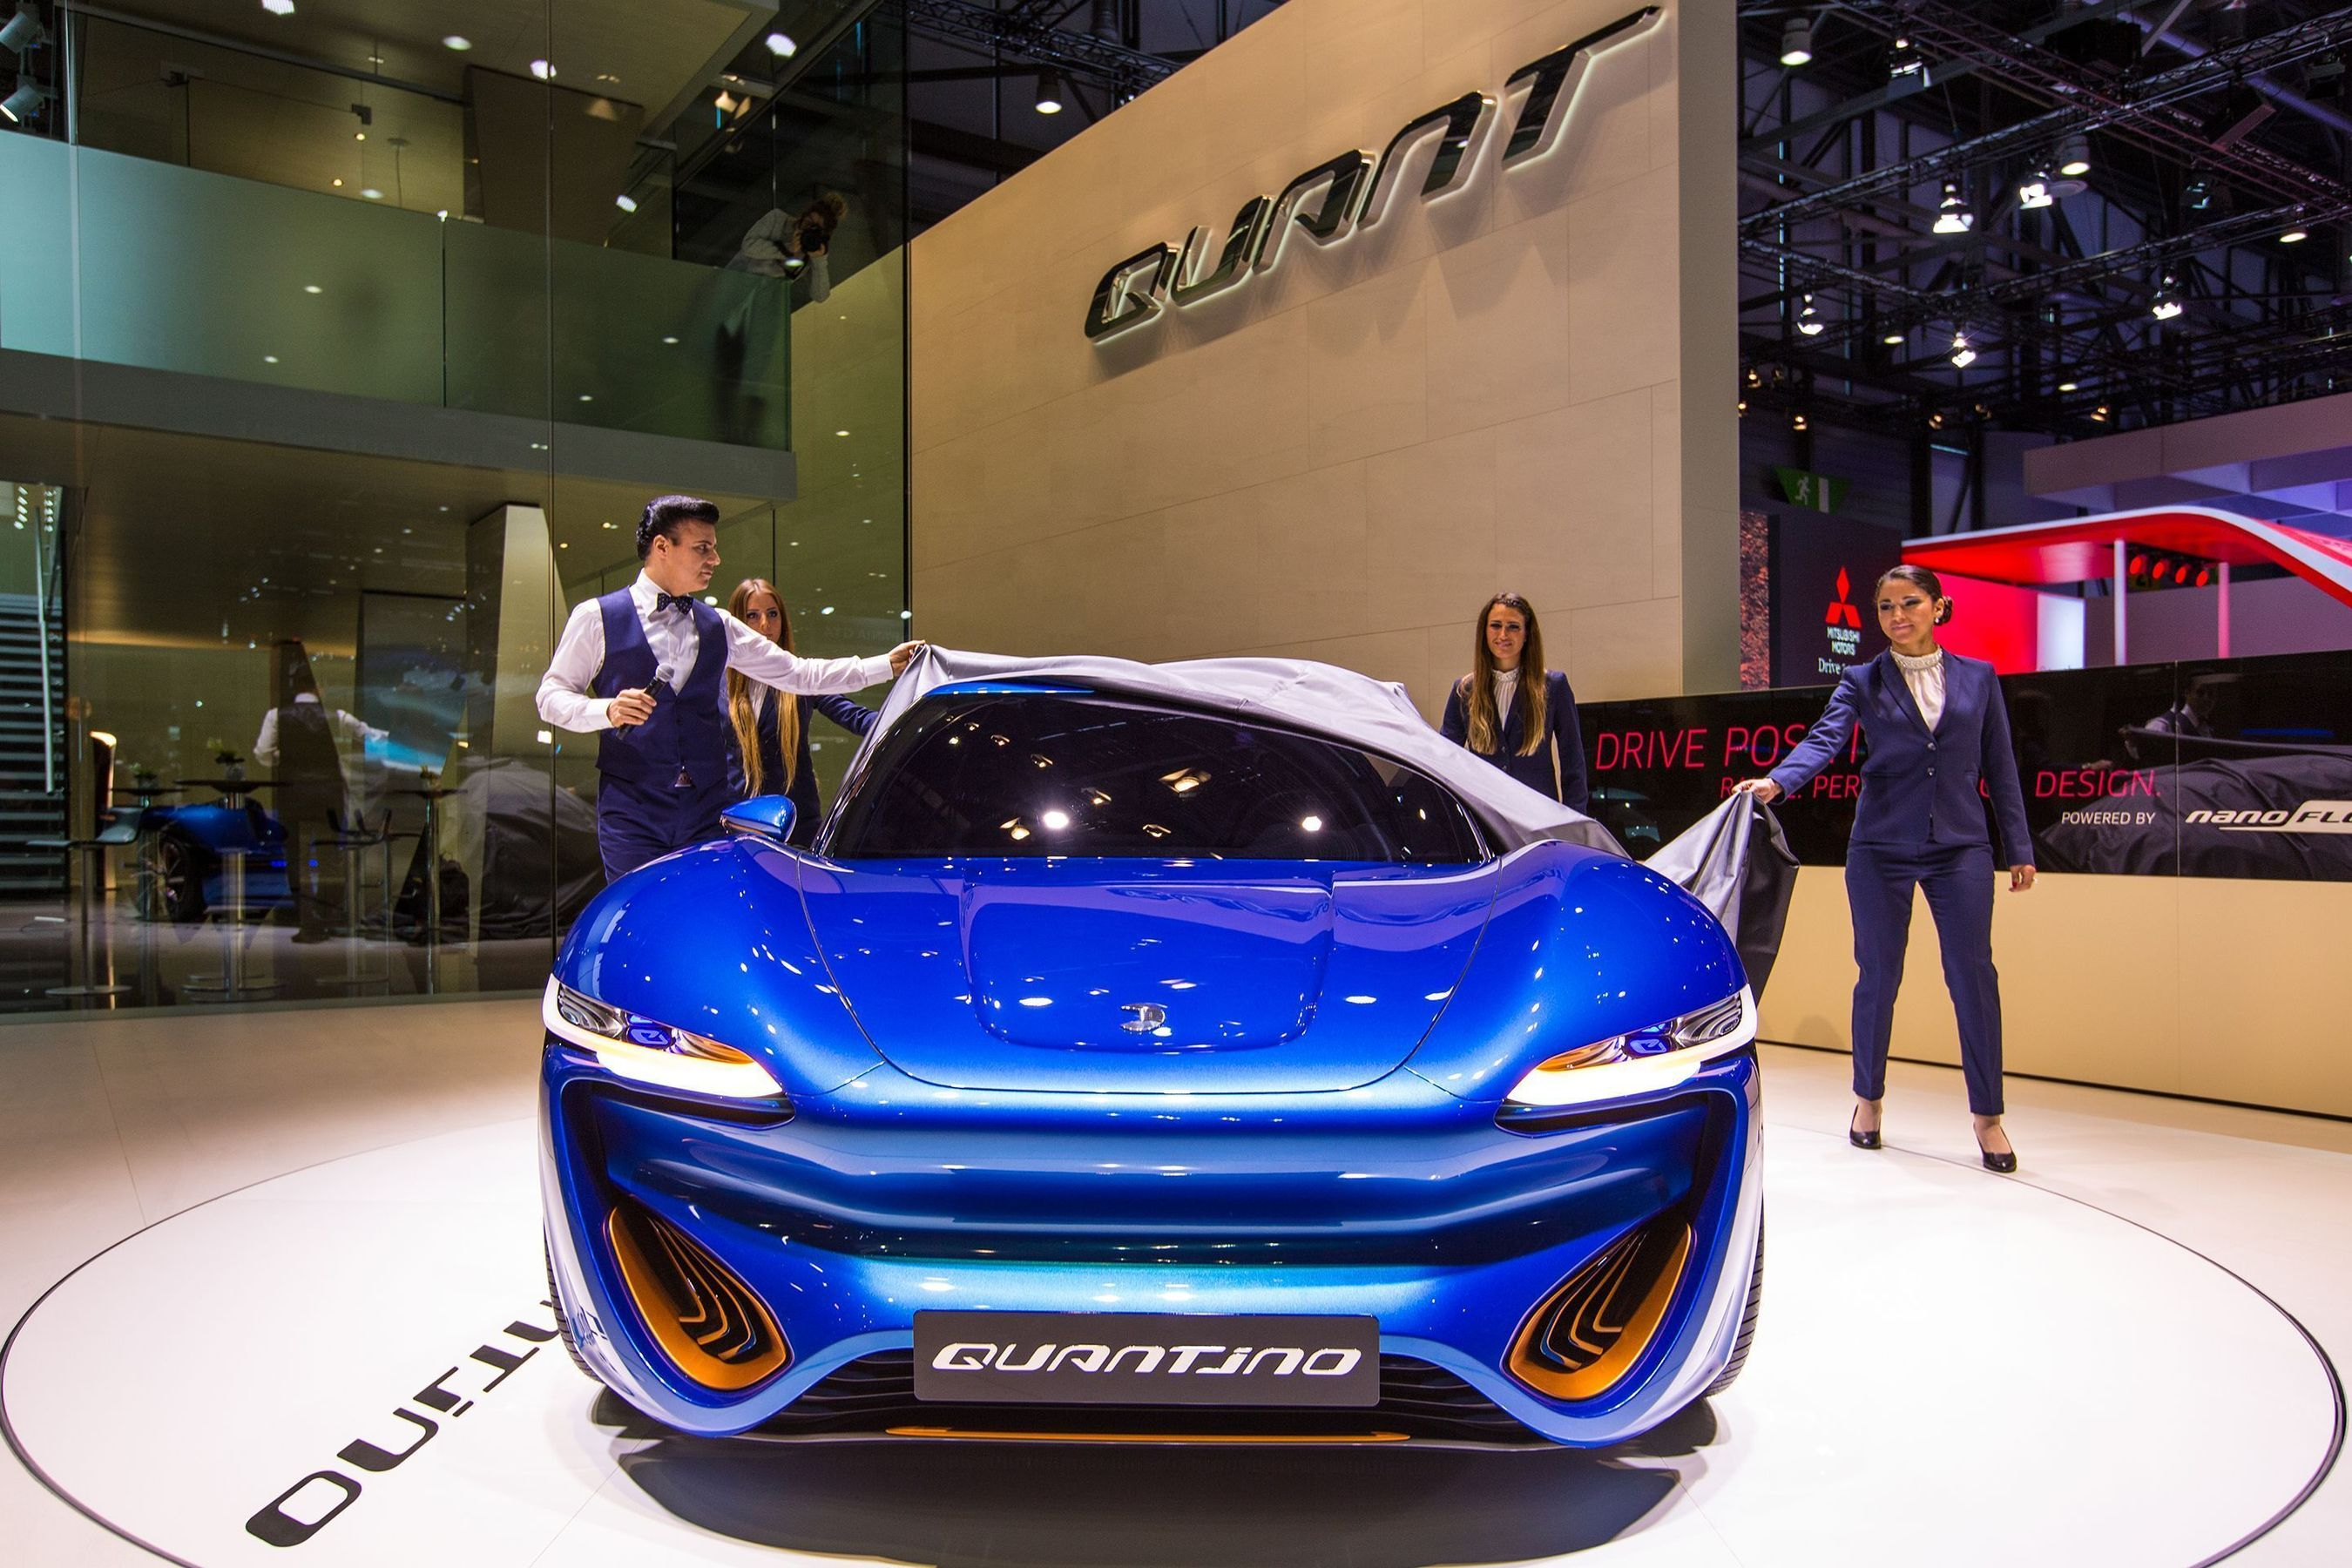 Two Successful World Premieres at the Geneva International Motor Show: QUANT F and QUANTiNO Impress Visitors at the Show 'This Geneva Motor Show Is Going to Be QUANTasti